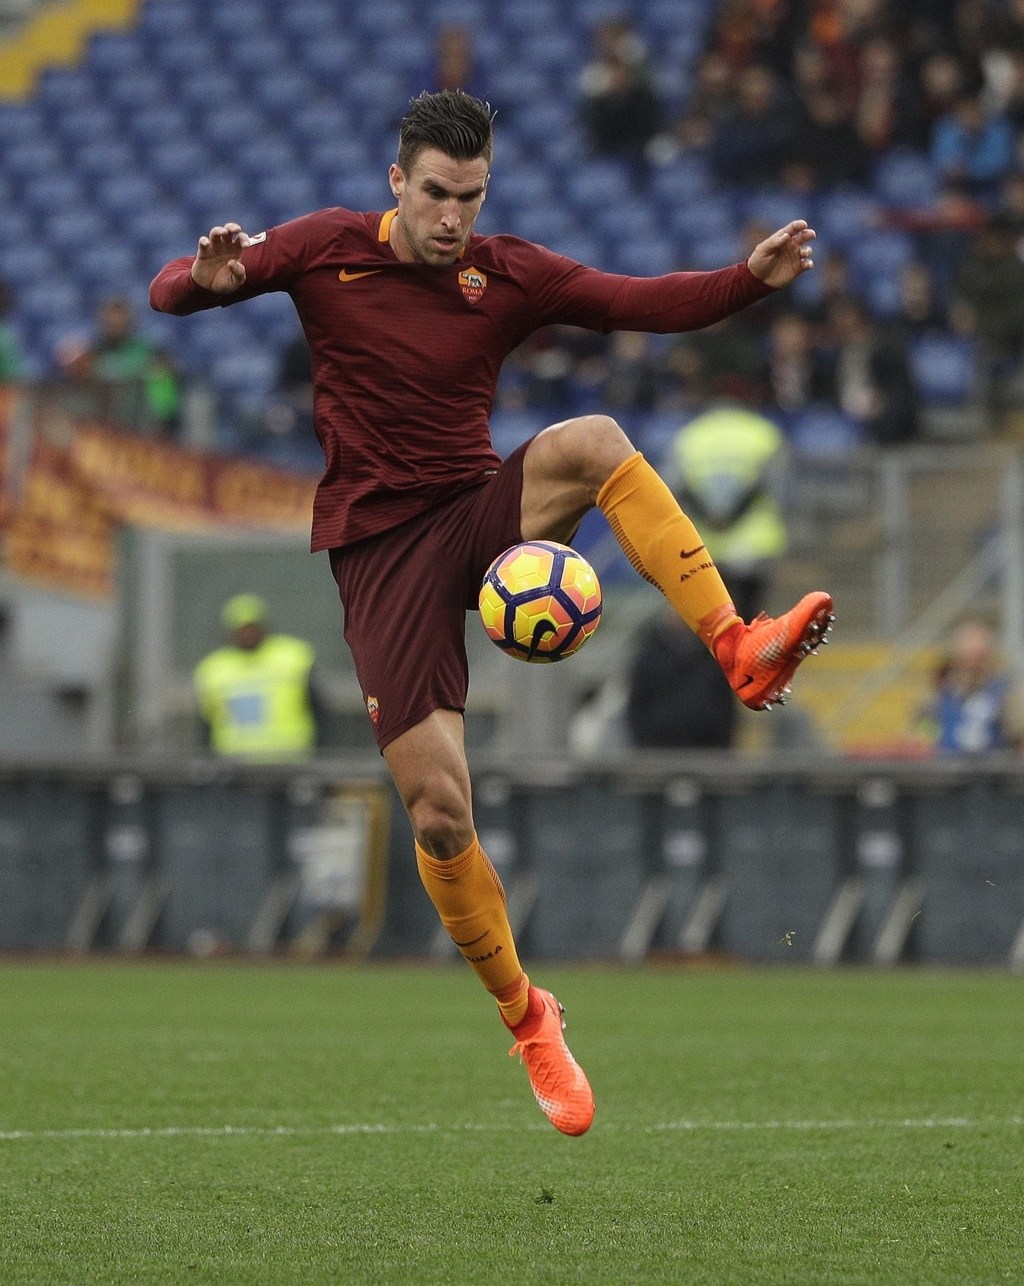 Roma's Kevin Strootman goes for the ball during a Serie A soccer match between Roma and Napoli, at the Rome Olympic stadium, Saturday, ...